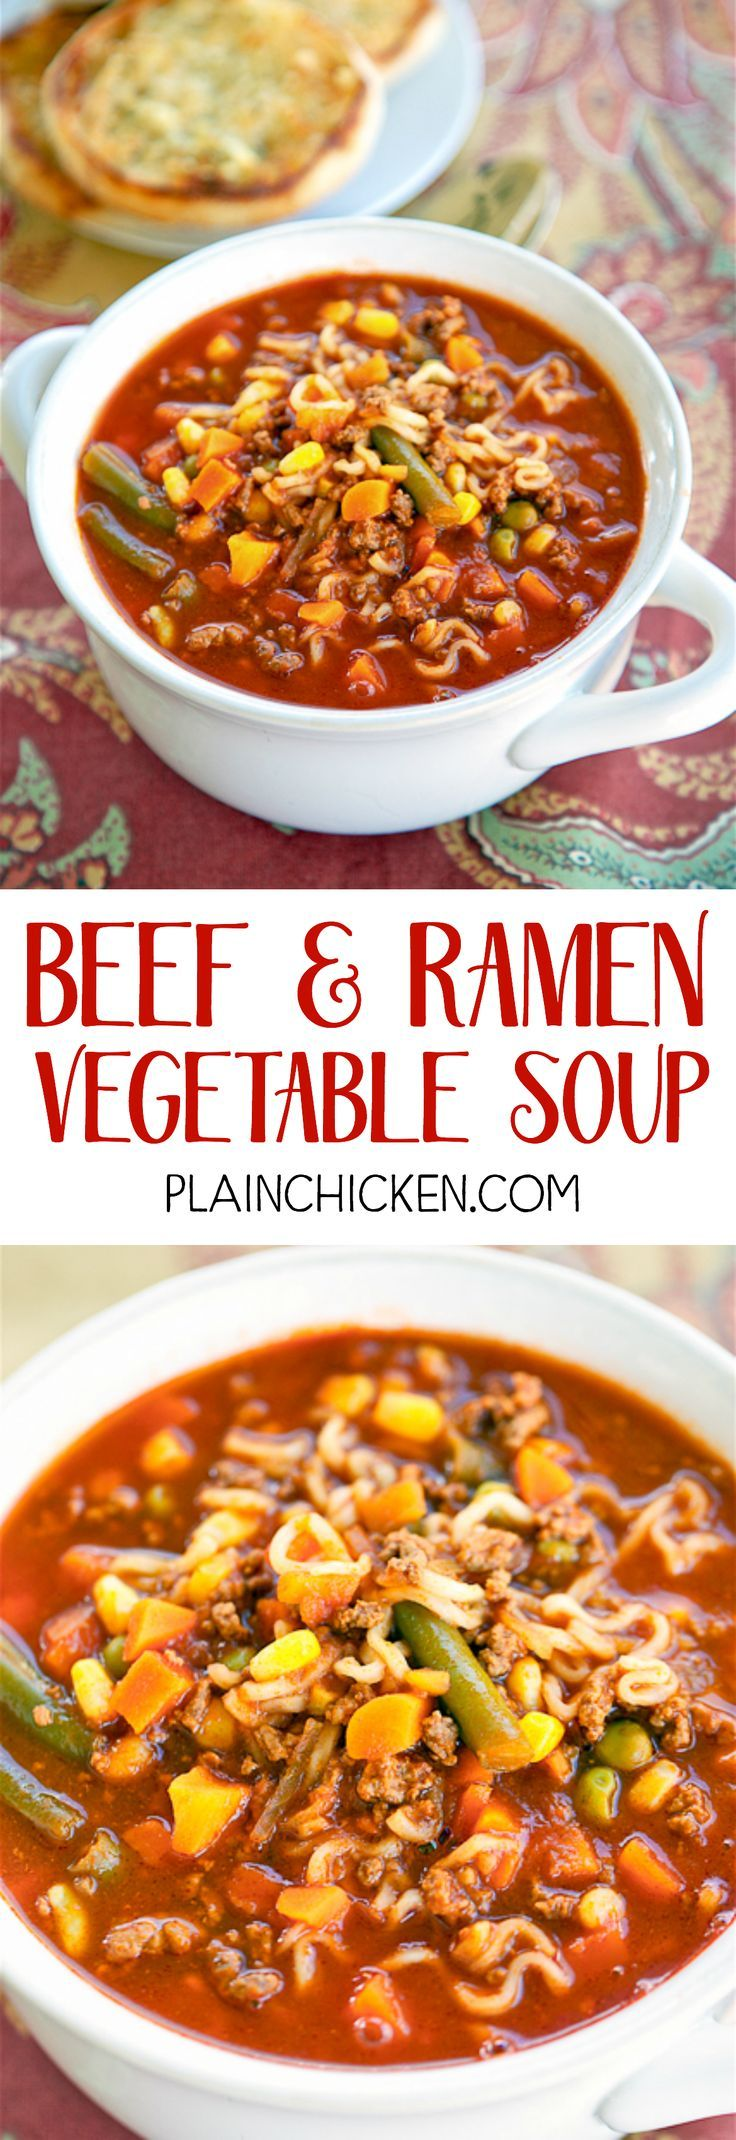 Beef And Ramen Vegetable Soup